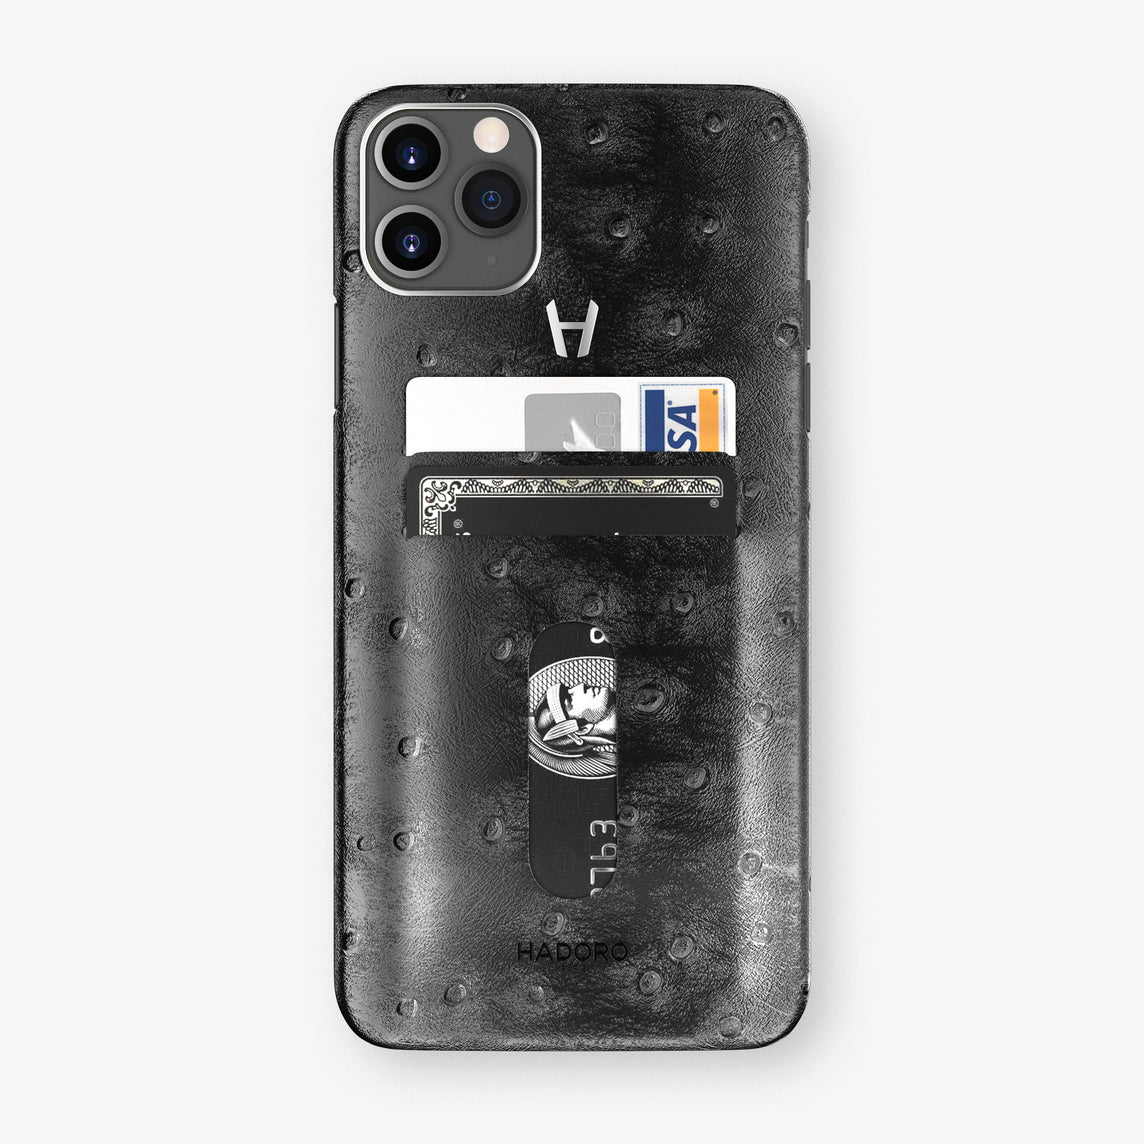 Ostrich Card Holder Case iPhone 11 Pro Max | Black - Stainless Steel